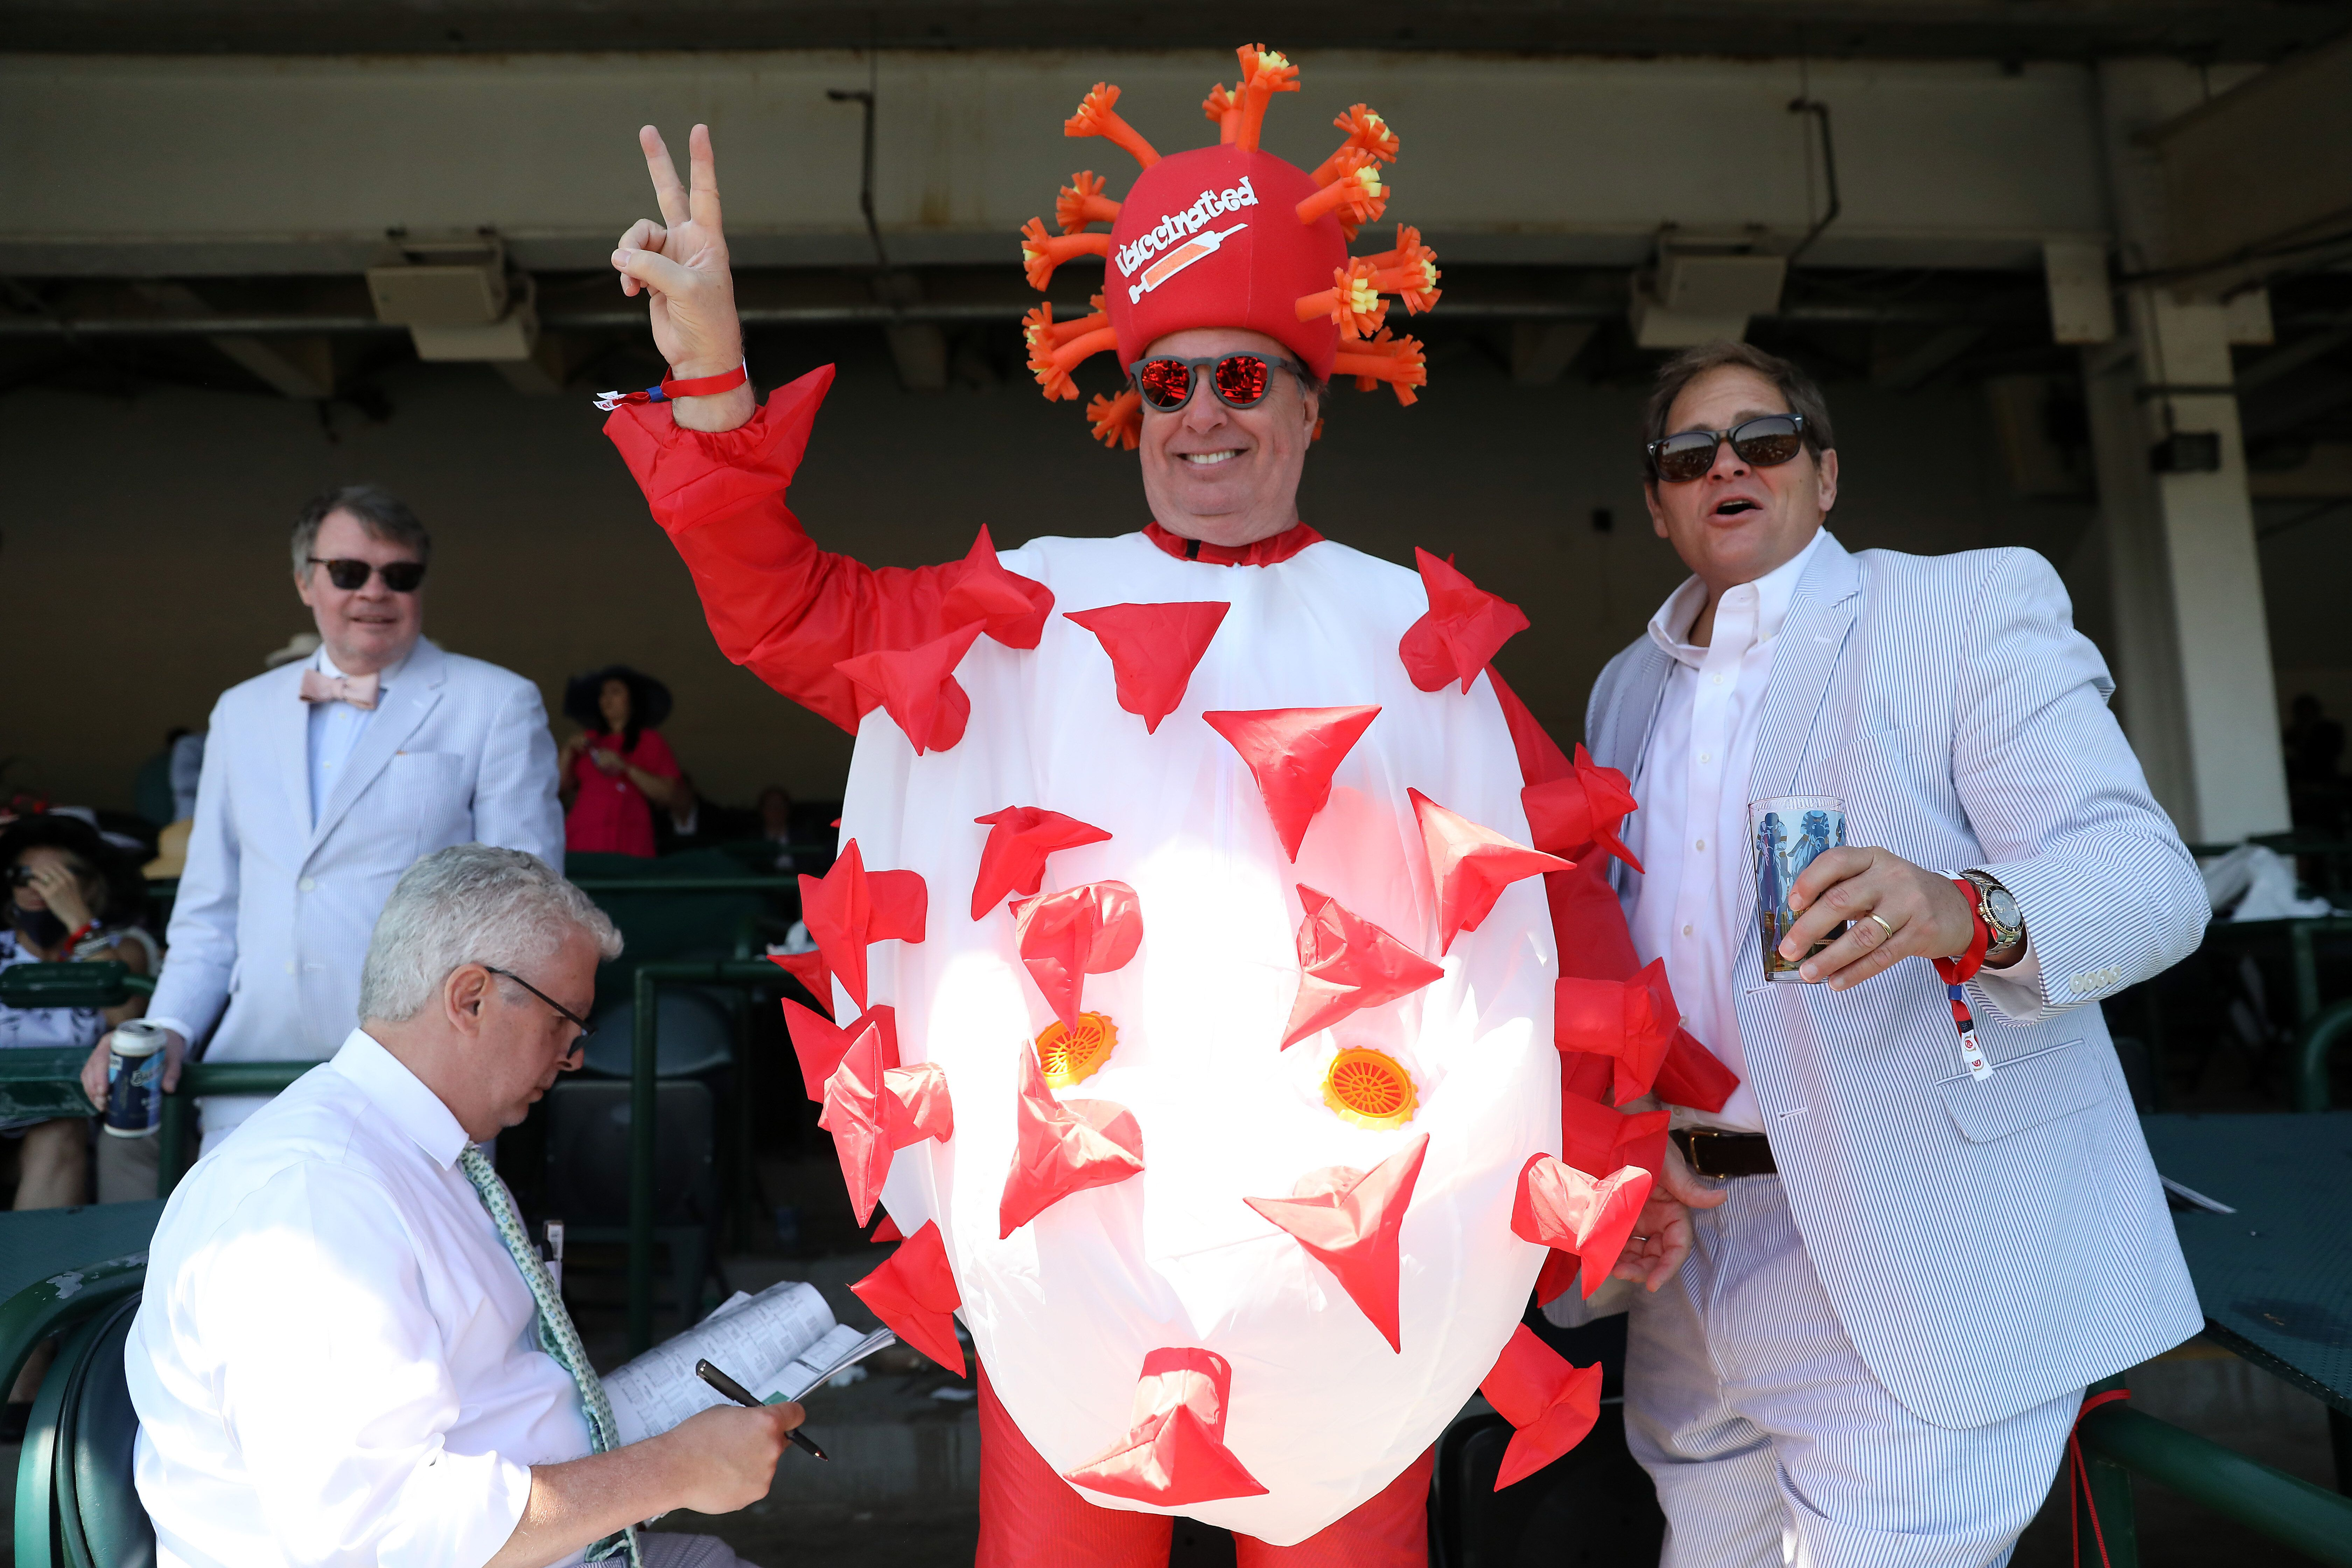 Kentucky Derby spectator Mark Ferguson of Dallas, Texas, wearing a COVID-19 costume at Saturday's event.